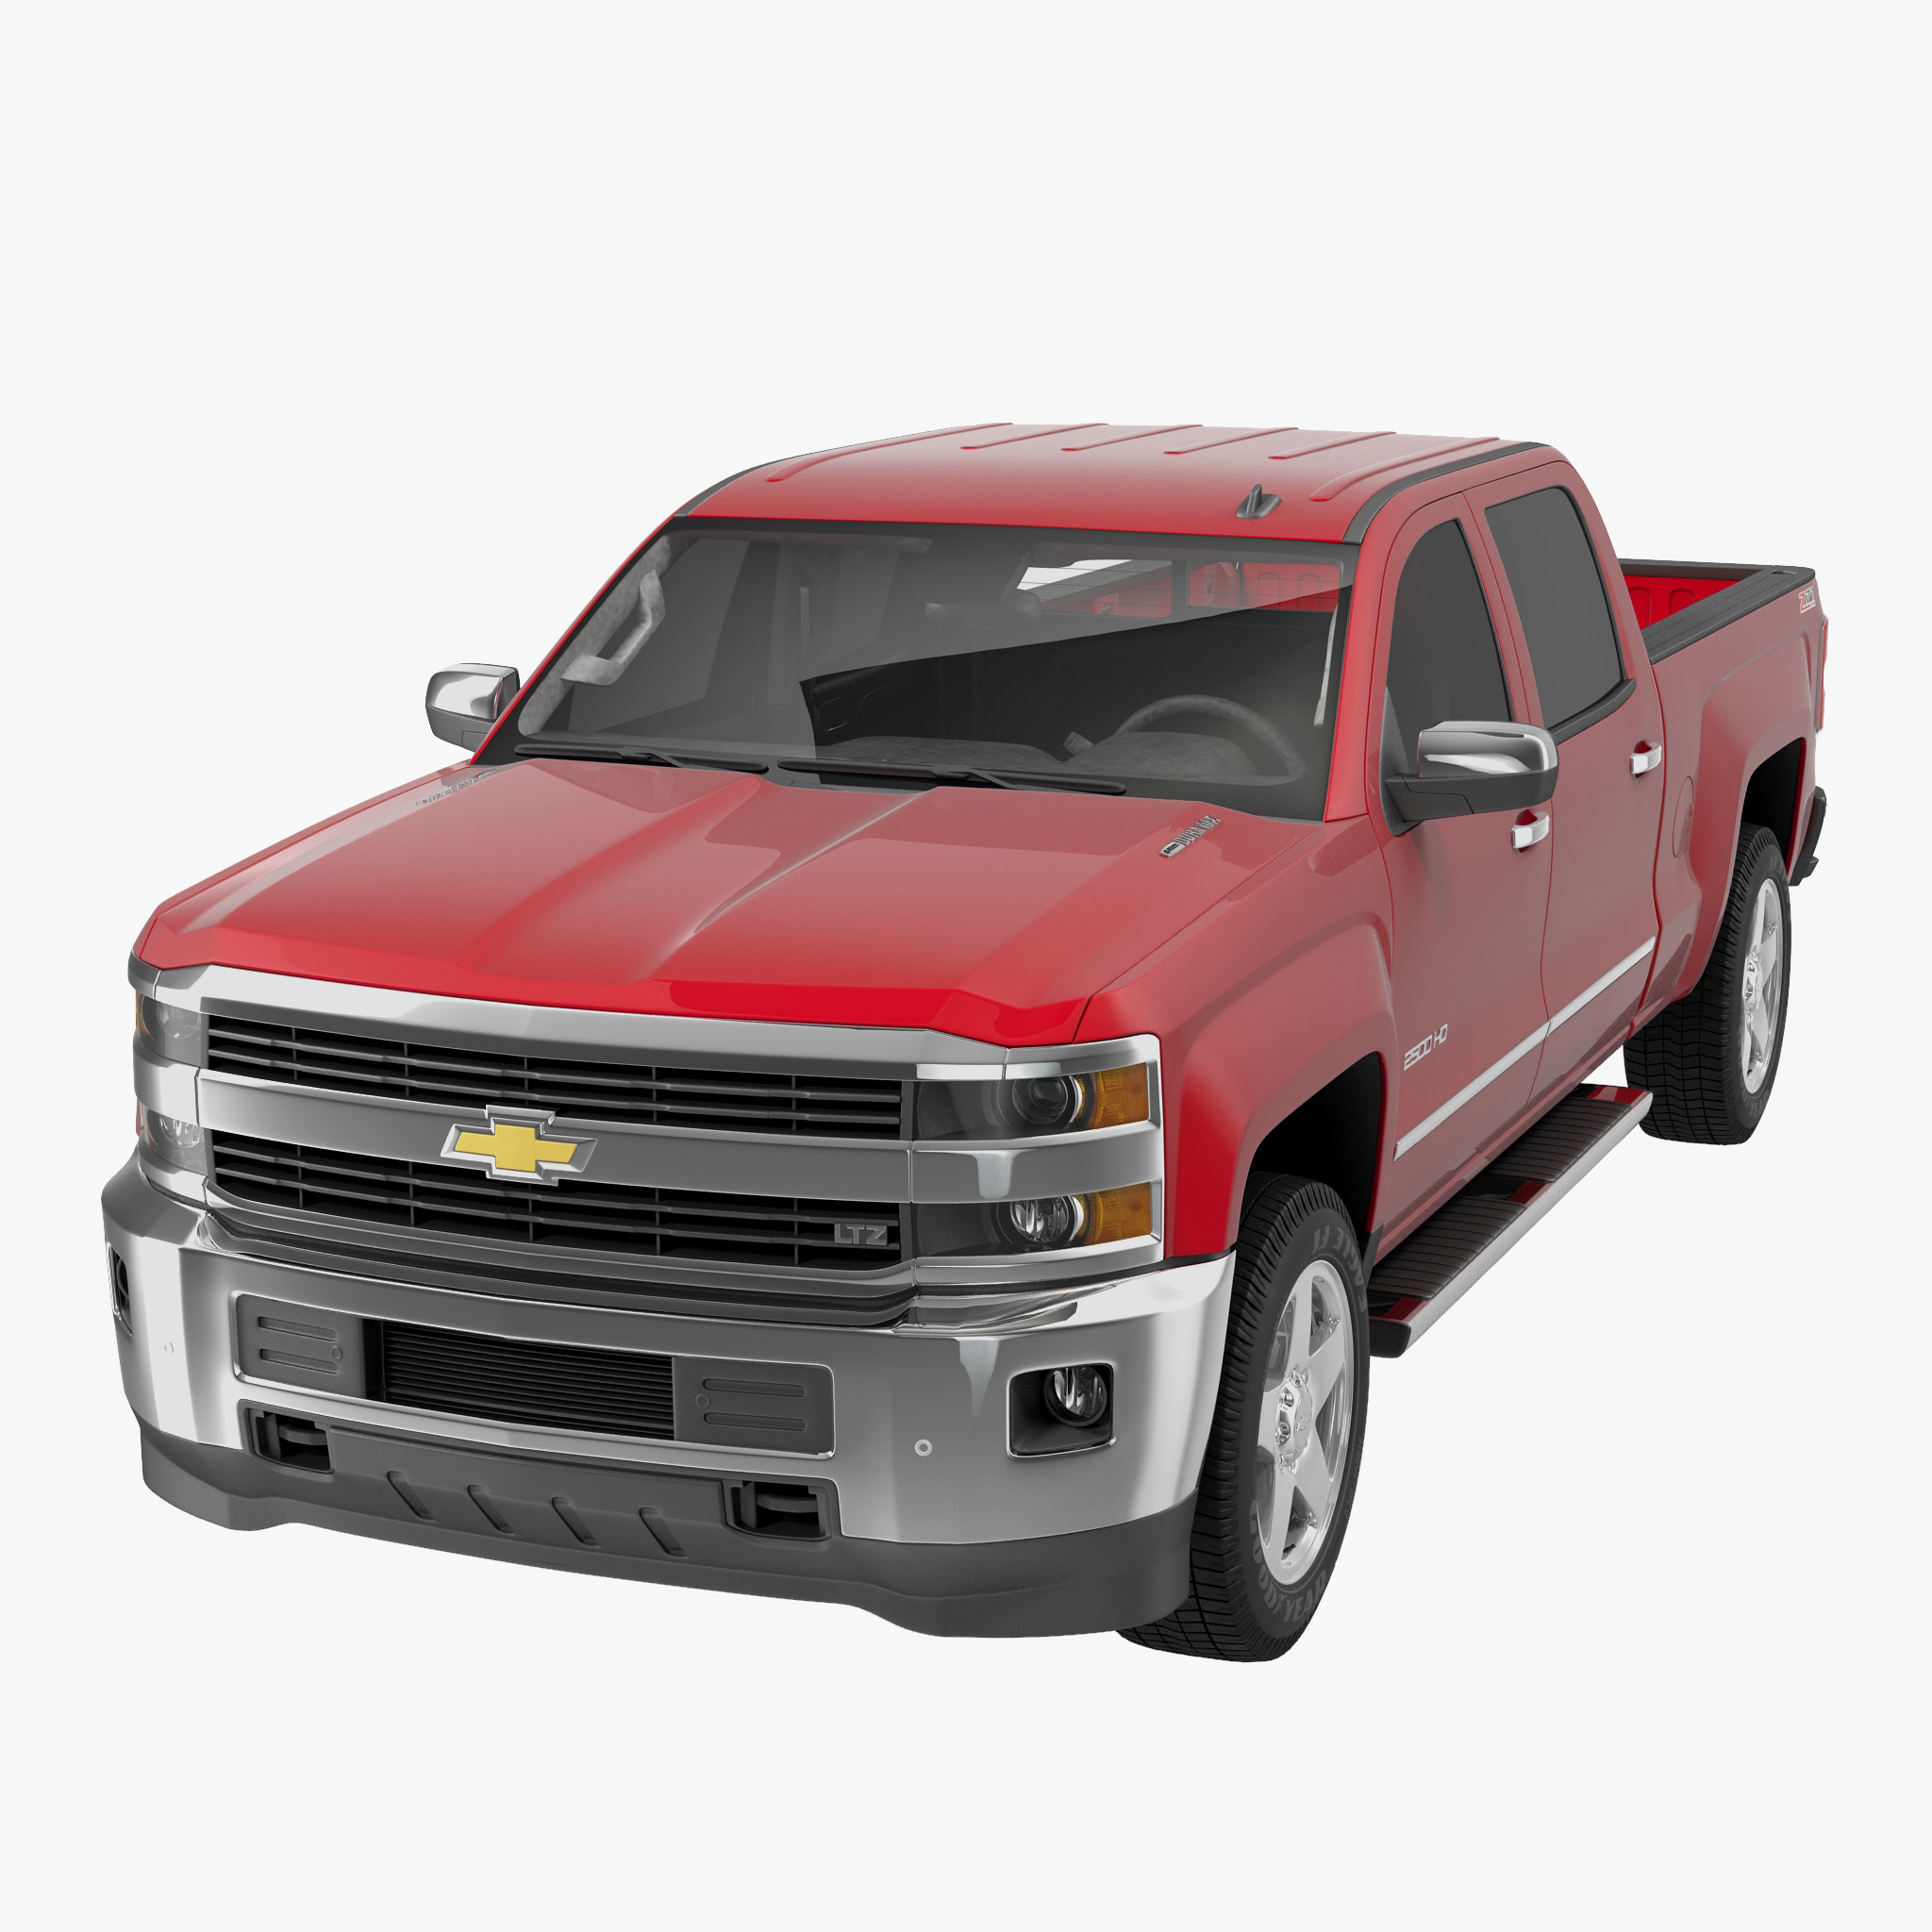 2015 Chevrolet Silverado 2500hd Lt Front Three Quarters Car Interior Design